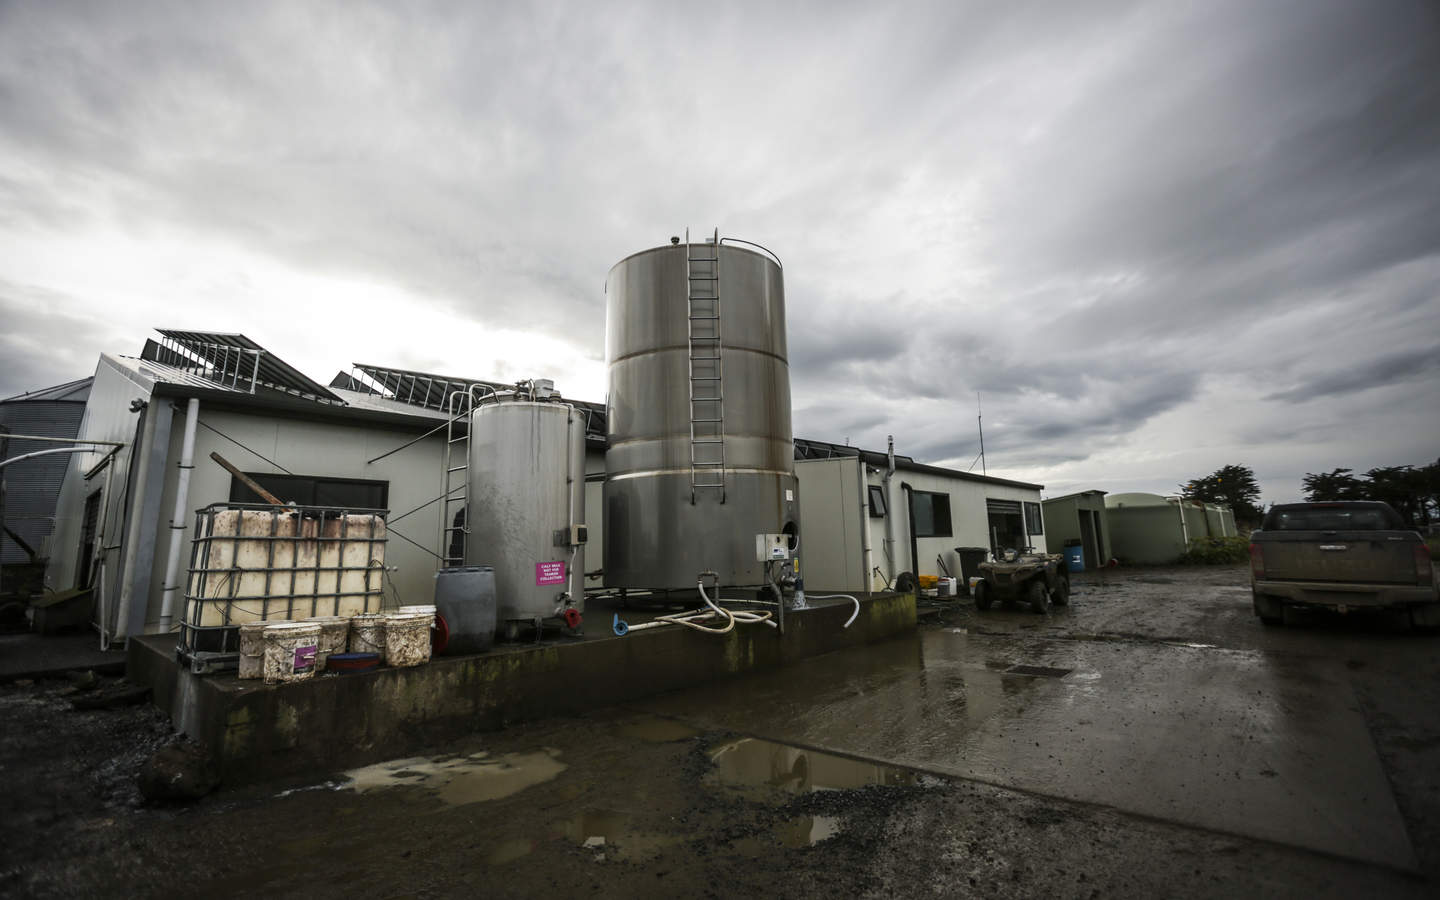 The Mathiesons have invested the profits from high Fonterra pay-outs into infrastructure that helps the farm weather the lean years